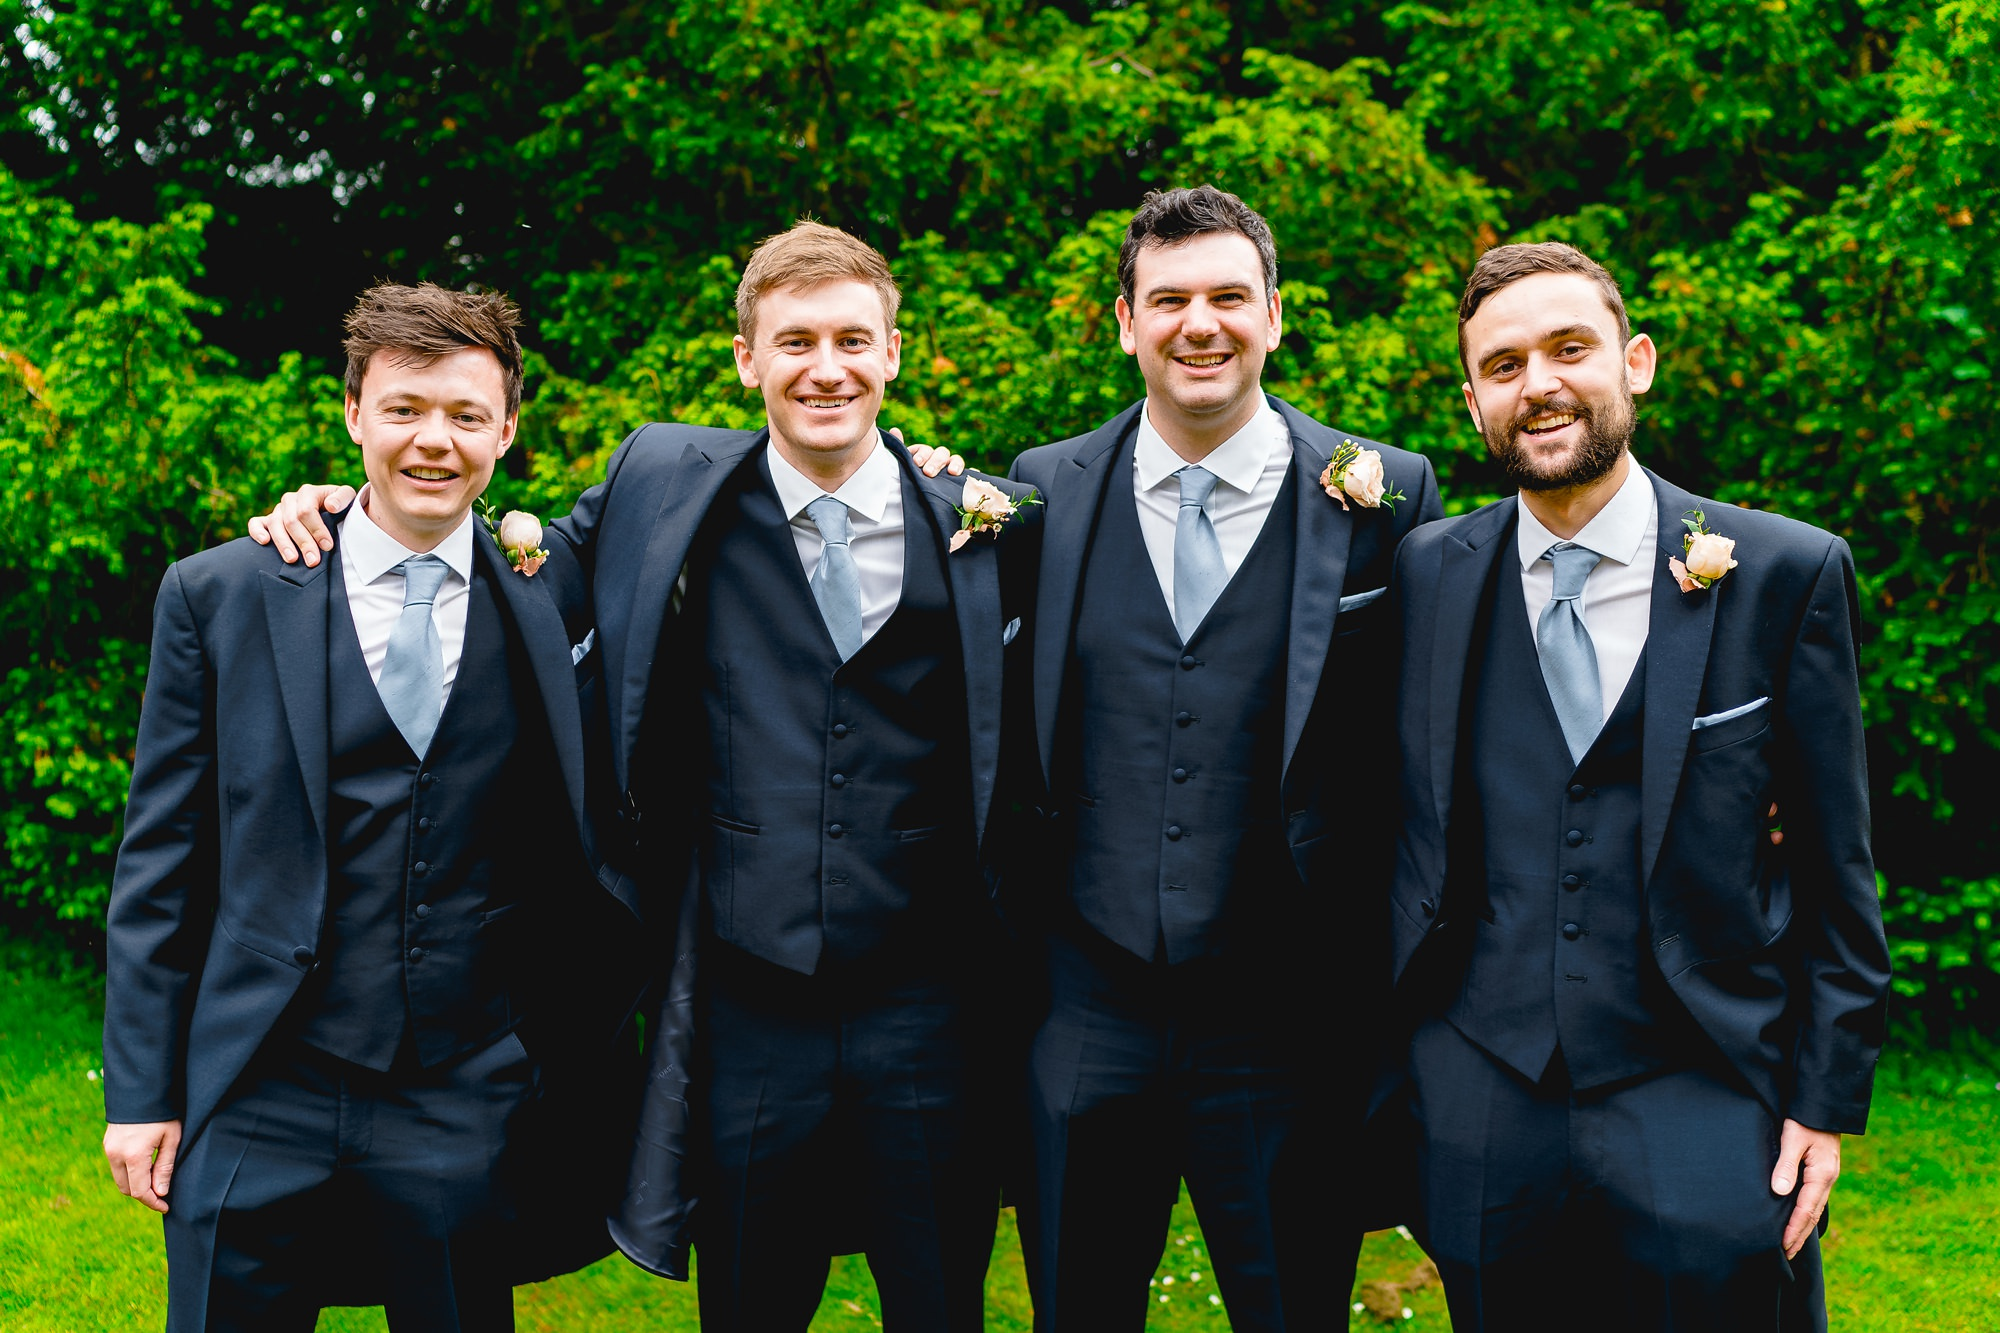 The-Trinity-Centre-Shrewsbury-Wedding-Photographer_0007.jpg